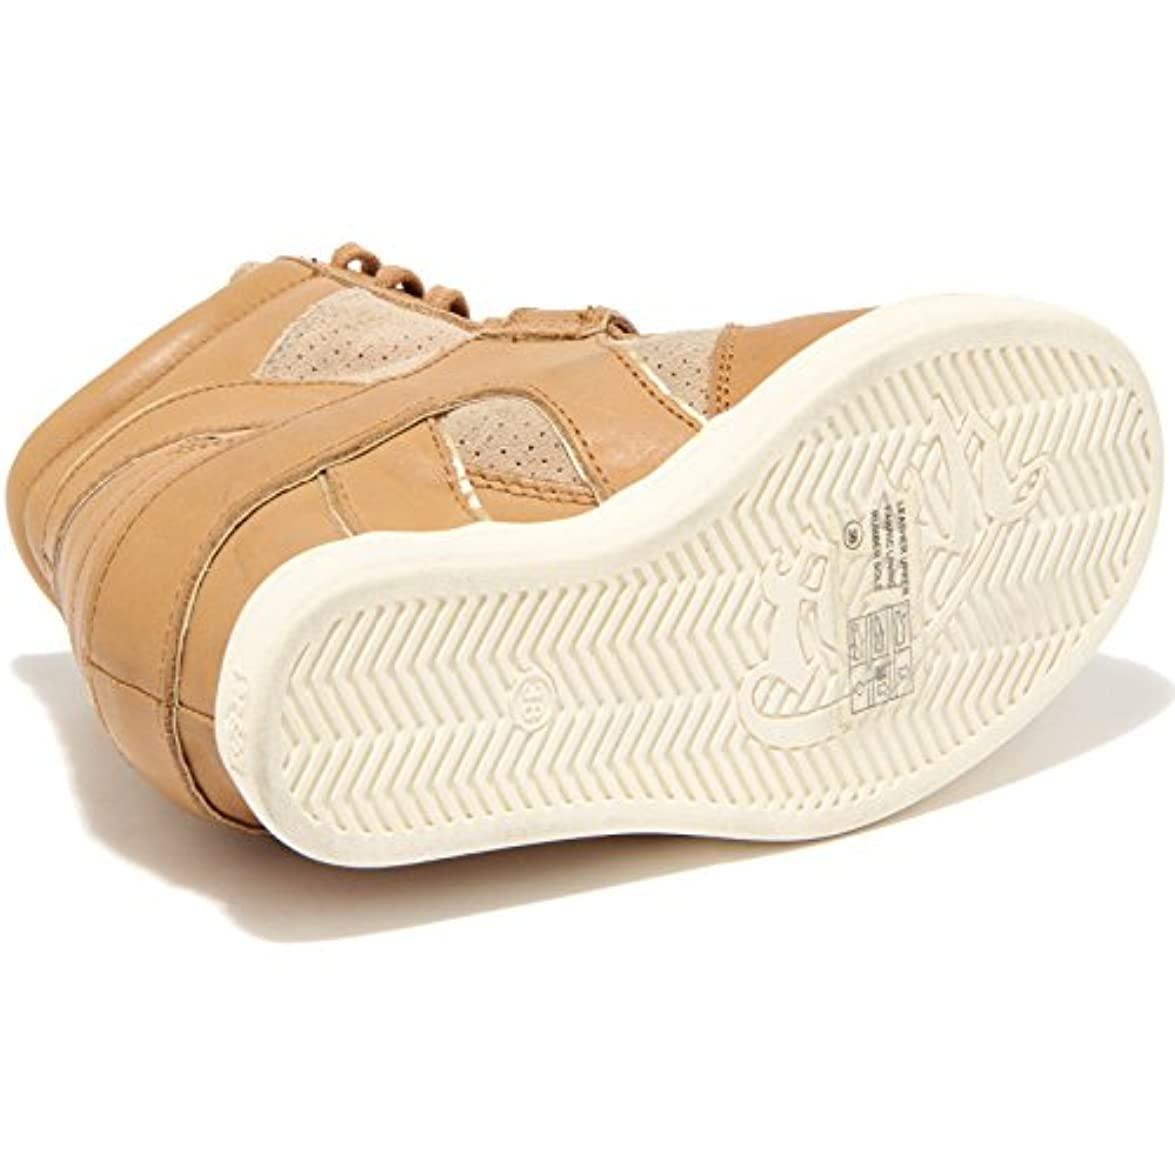 Ash 88707 Sneaker Bang Scarpa Bimba Shoes Kids